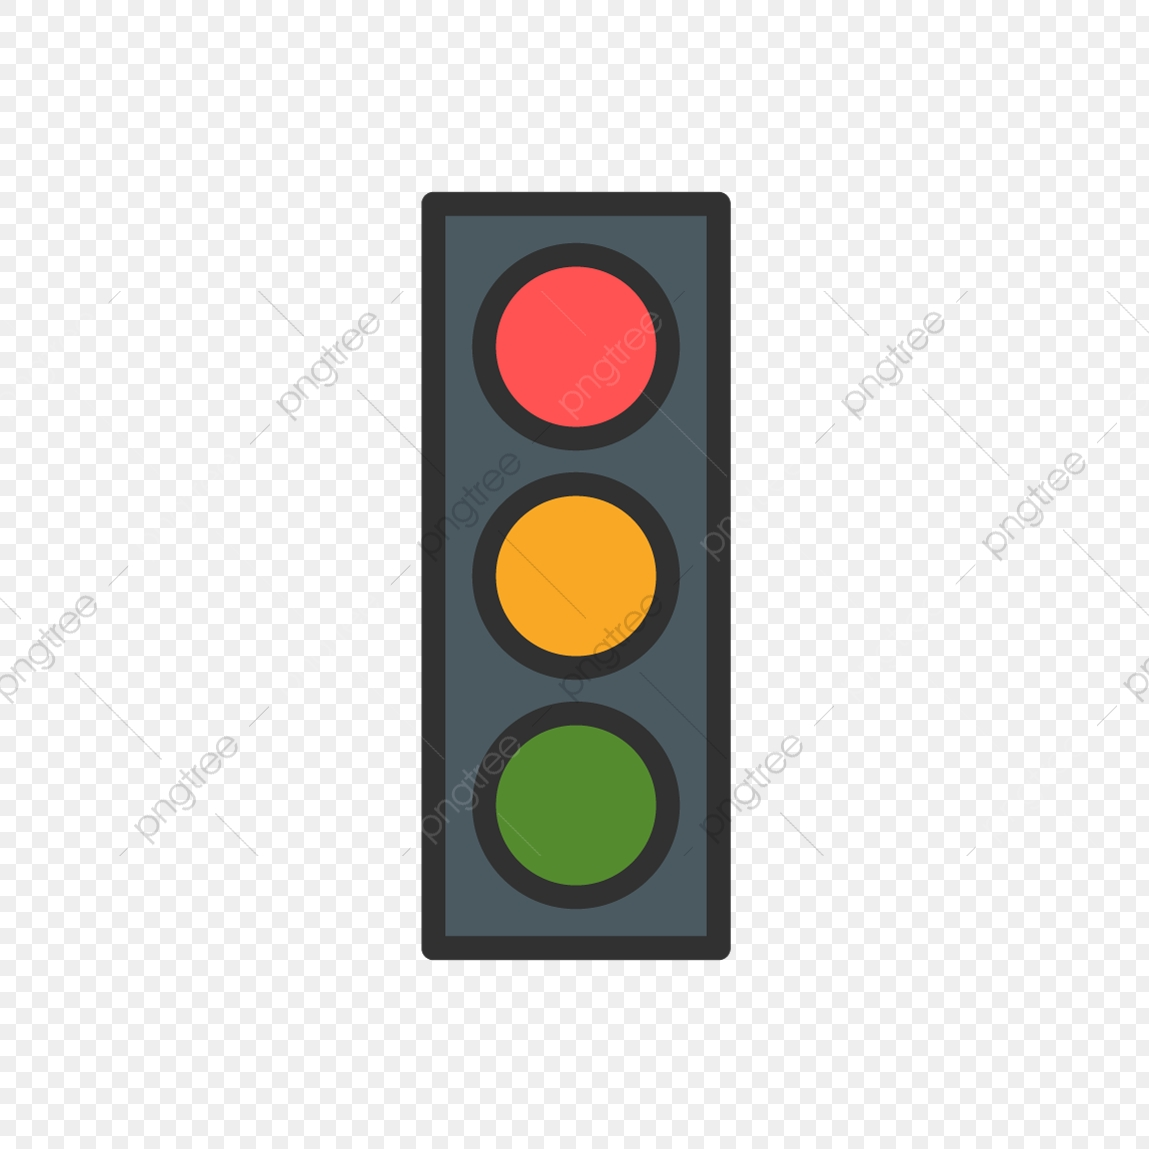 Vector Traffic Signal Icon, Signal, Traffic, Traffic Lights.